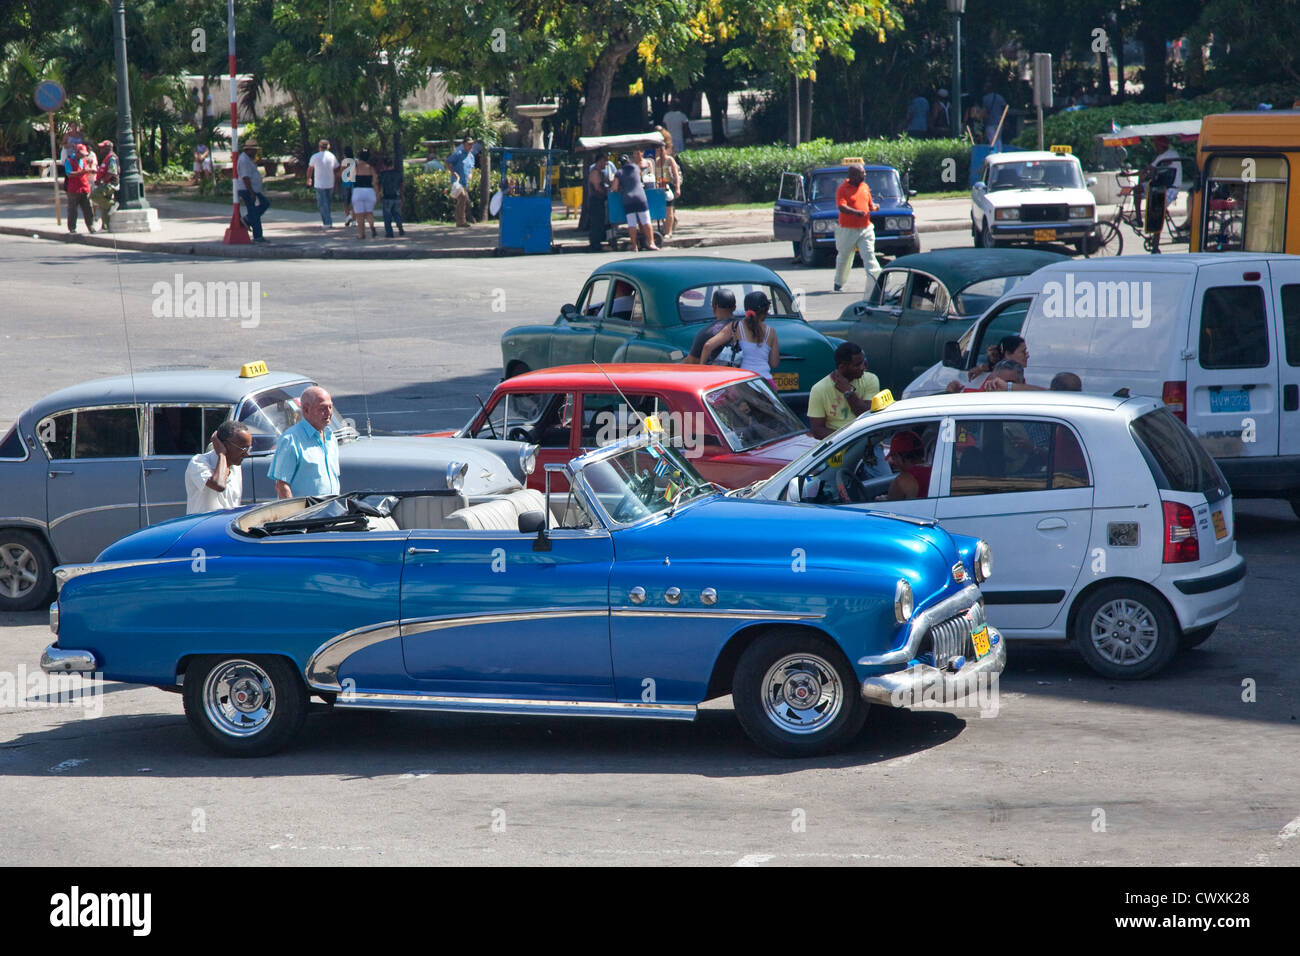 Havana has a fabulous mix of old and new cars cruising around the ...